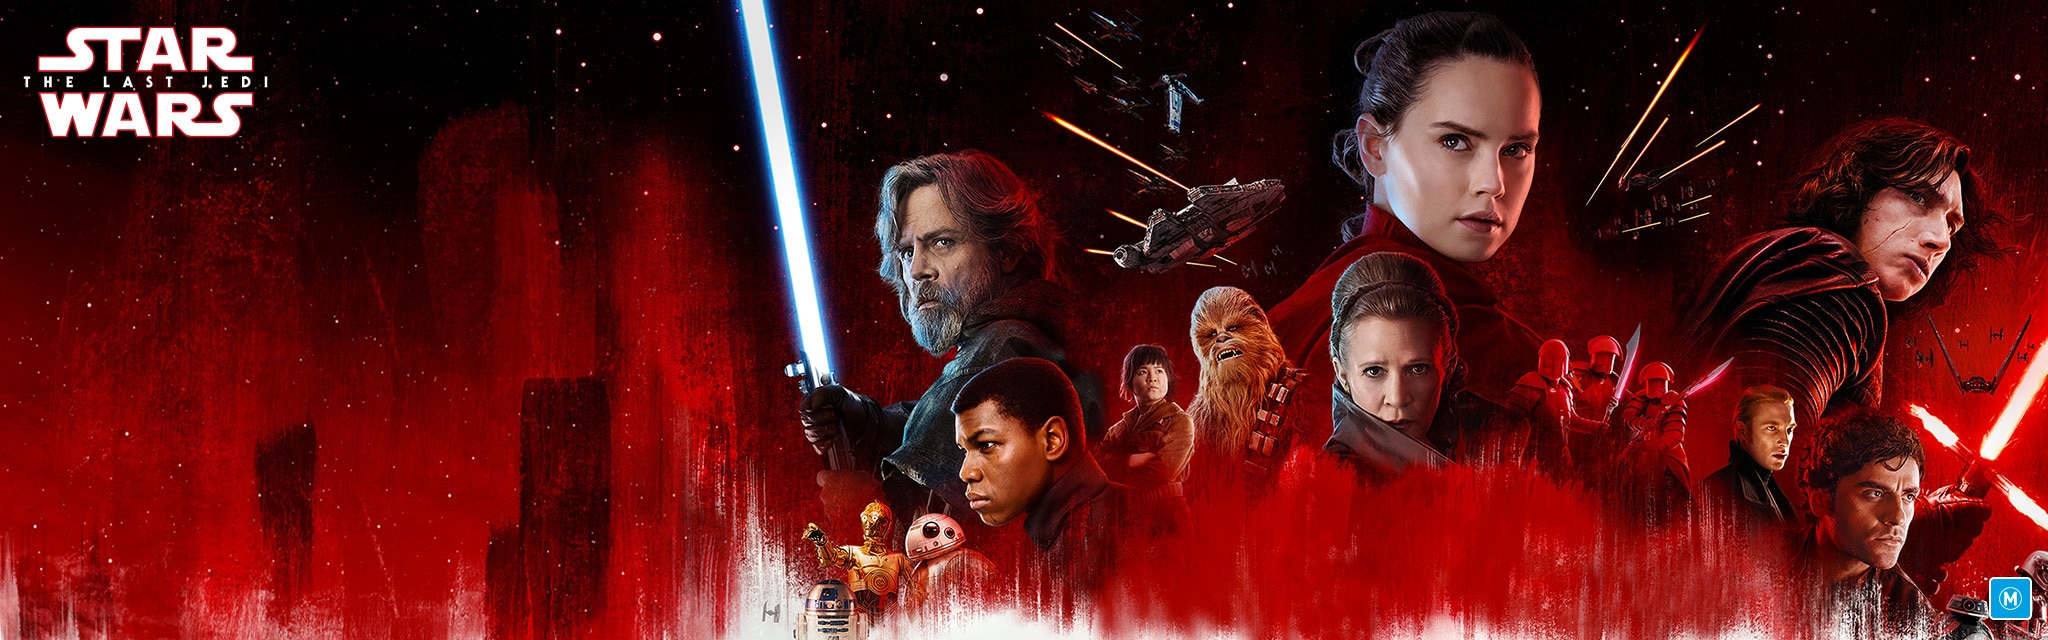 AU Home - Star Wars The Last Jedi - HE Hero